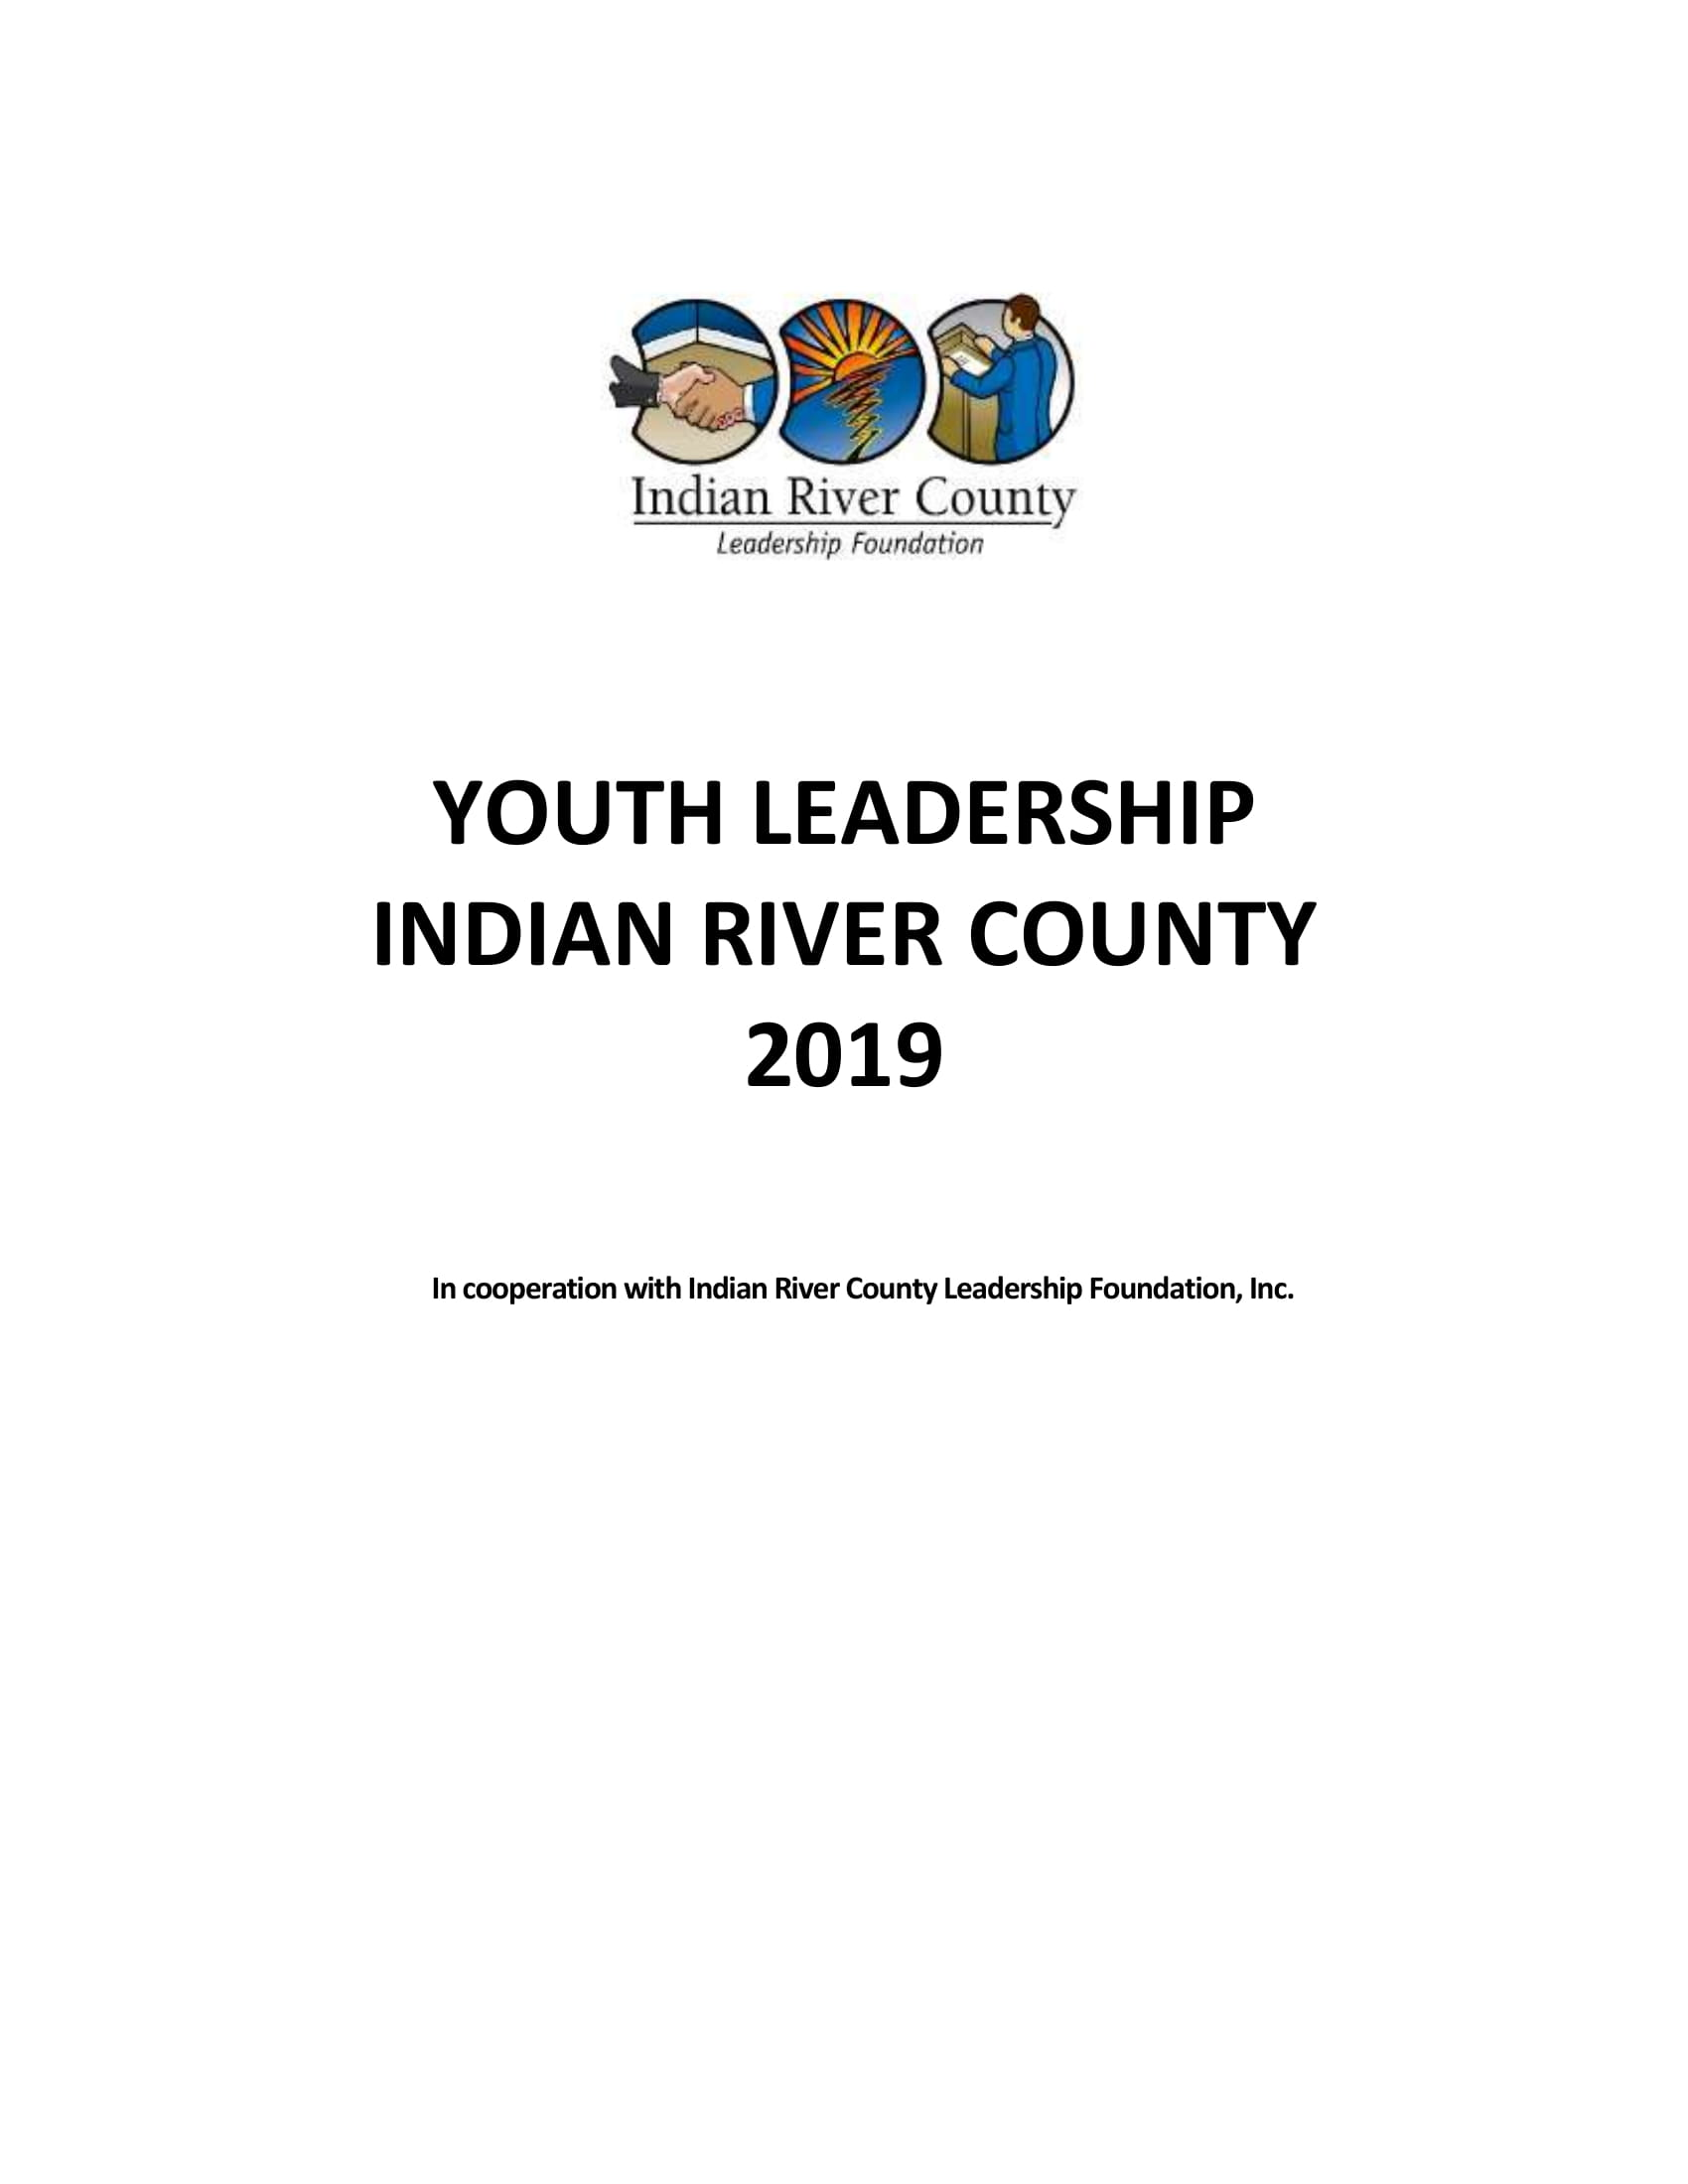 YOUTH-Leadership-IRC-Application-2019--1.jpg